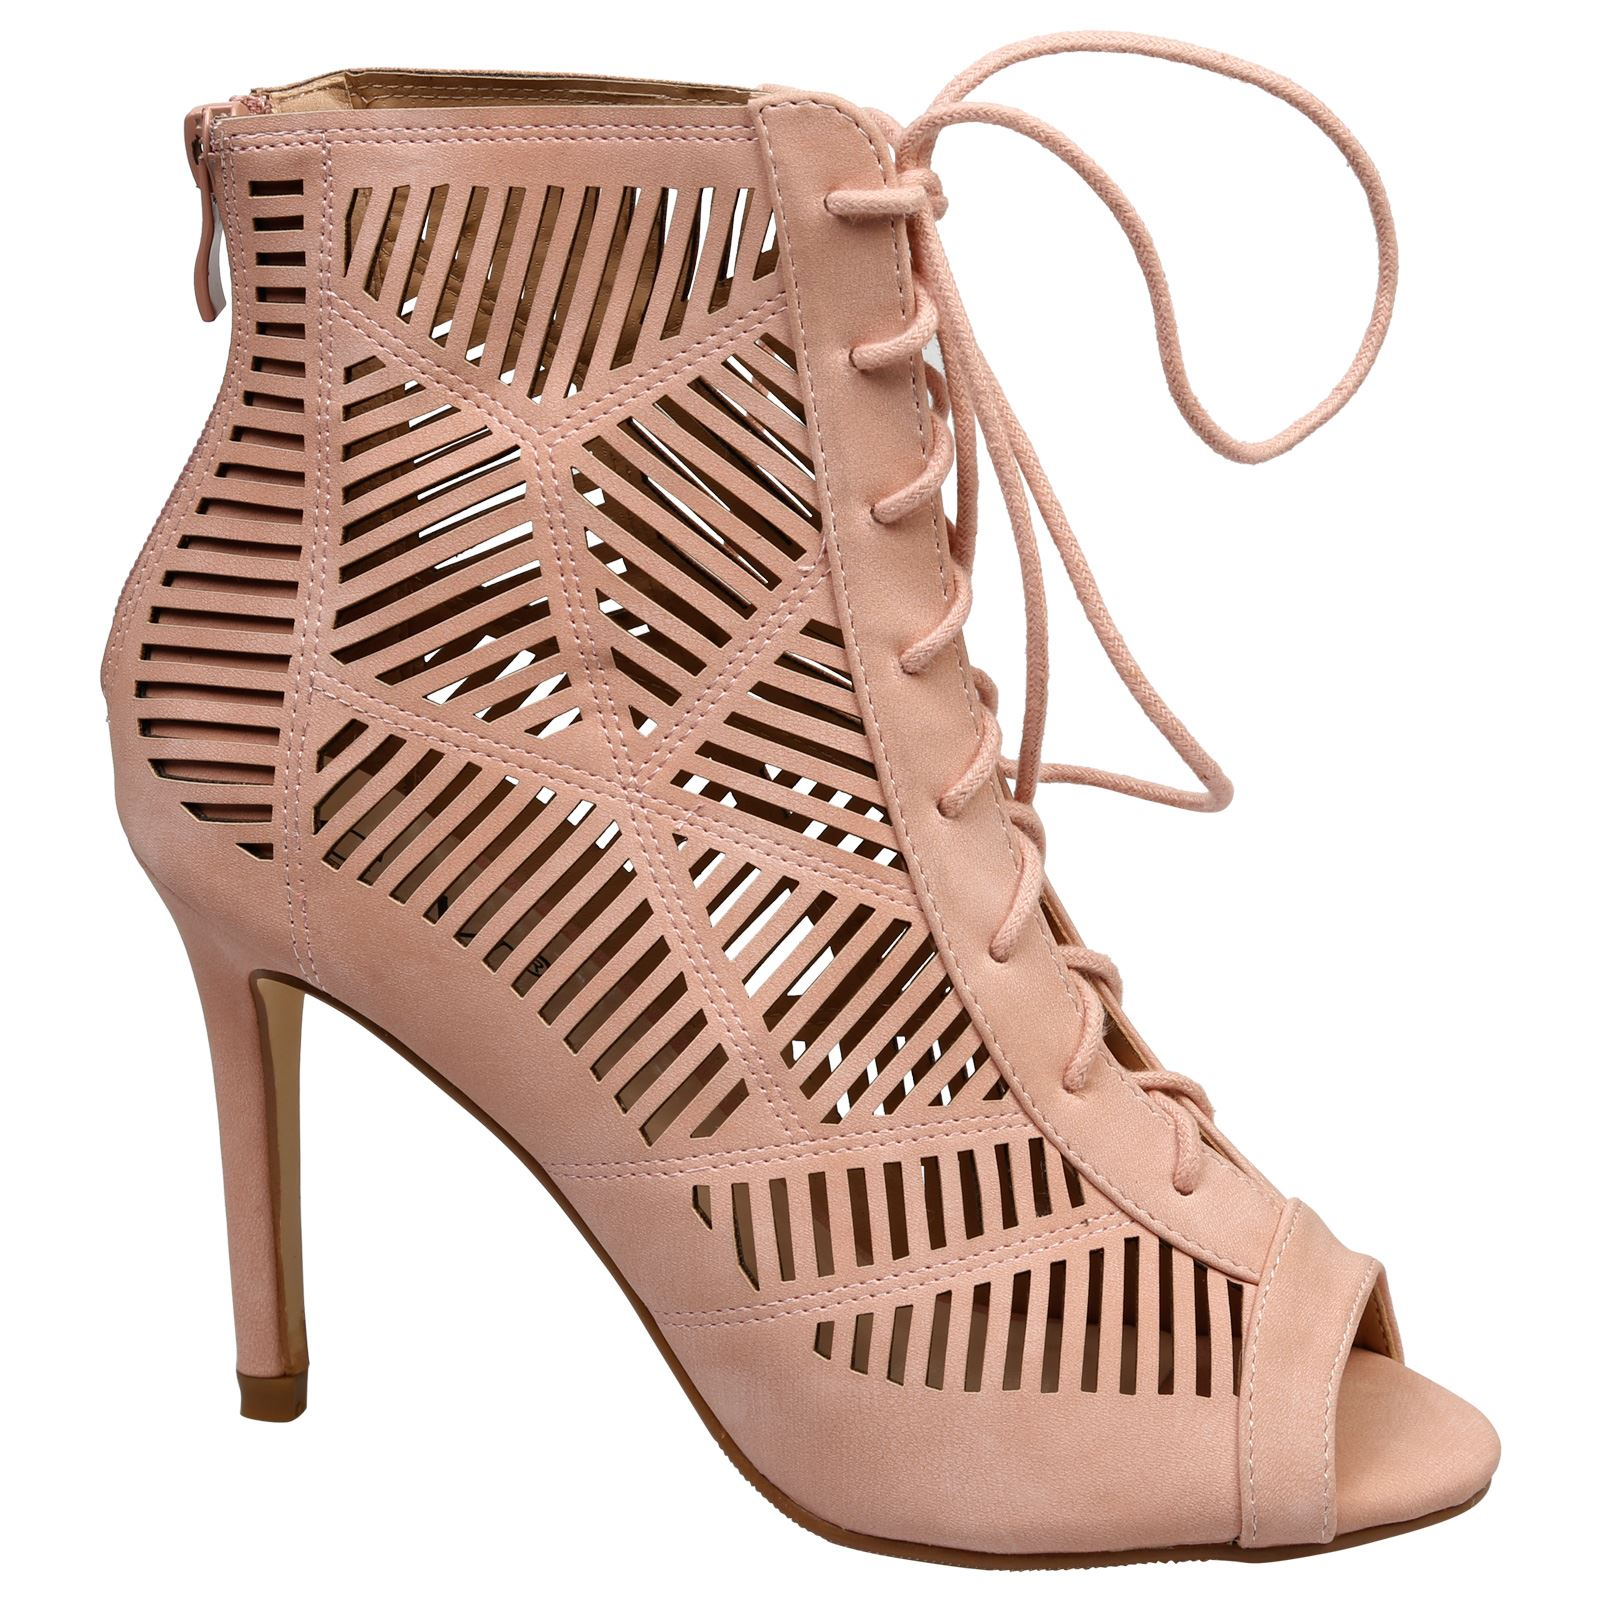 Anais-Womens-High-Heels-Stilettos-Lace-Up-Peep-Toe-Ankle-Boots-Ladies-Shoes-Size thumbnail 11